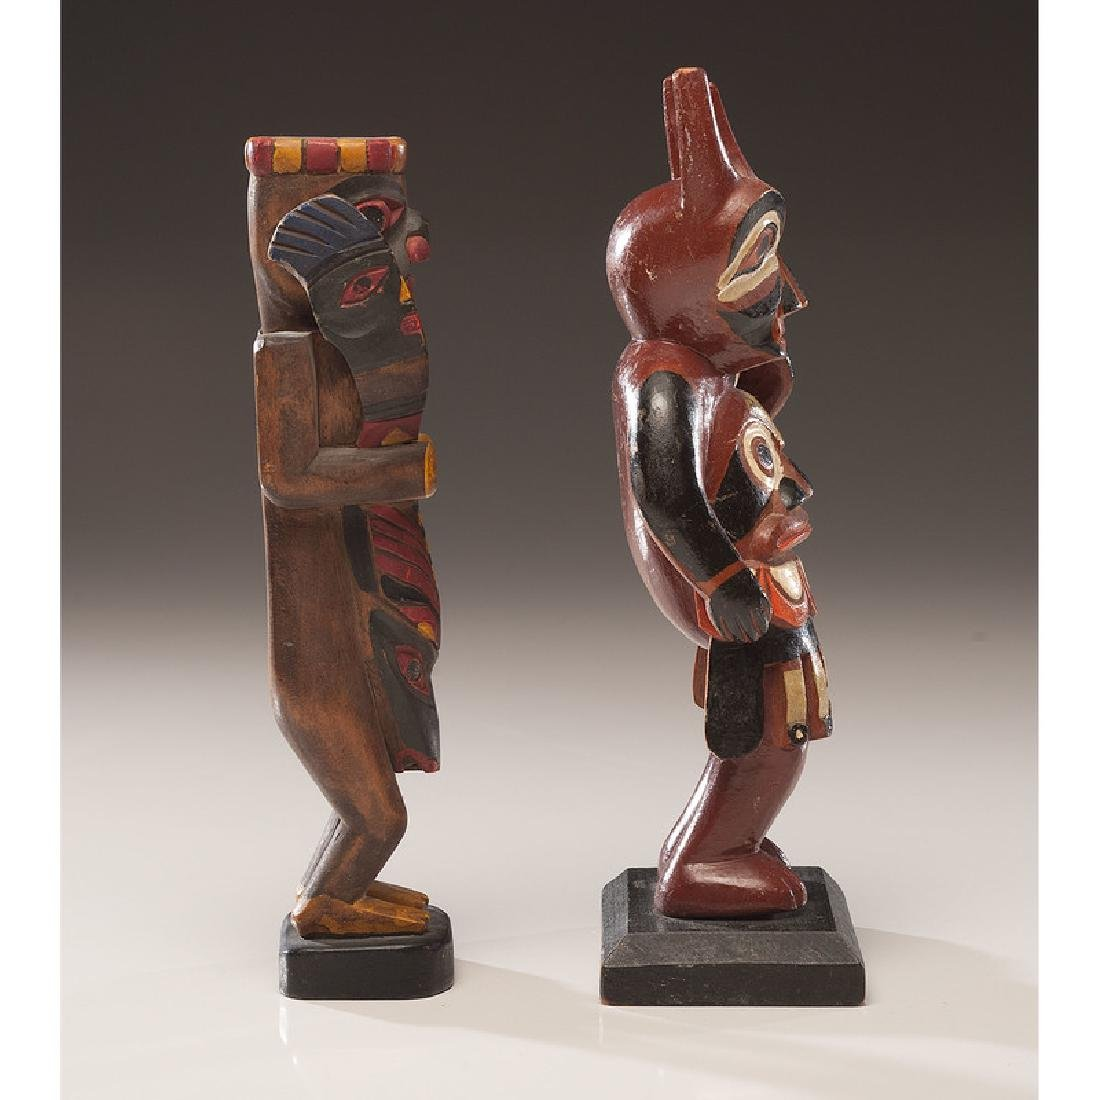 Northwest Coast Painted Wood Carvings with Nugget Shop - 2